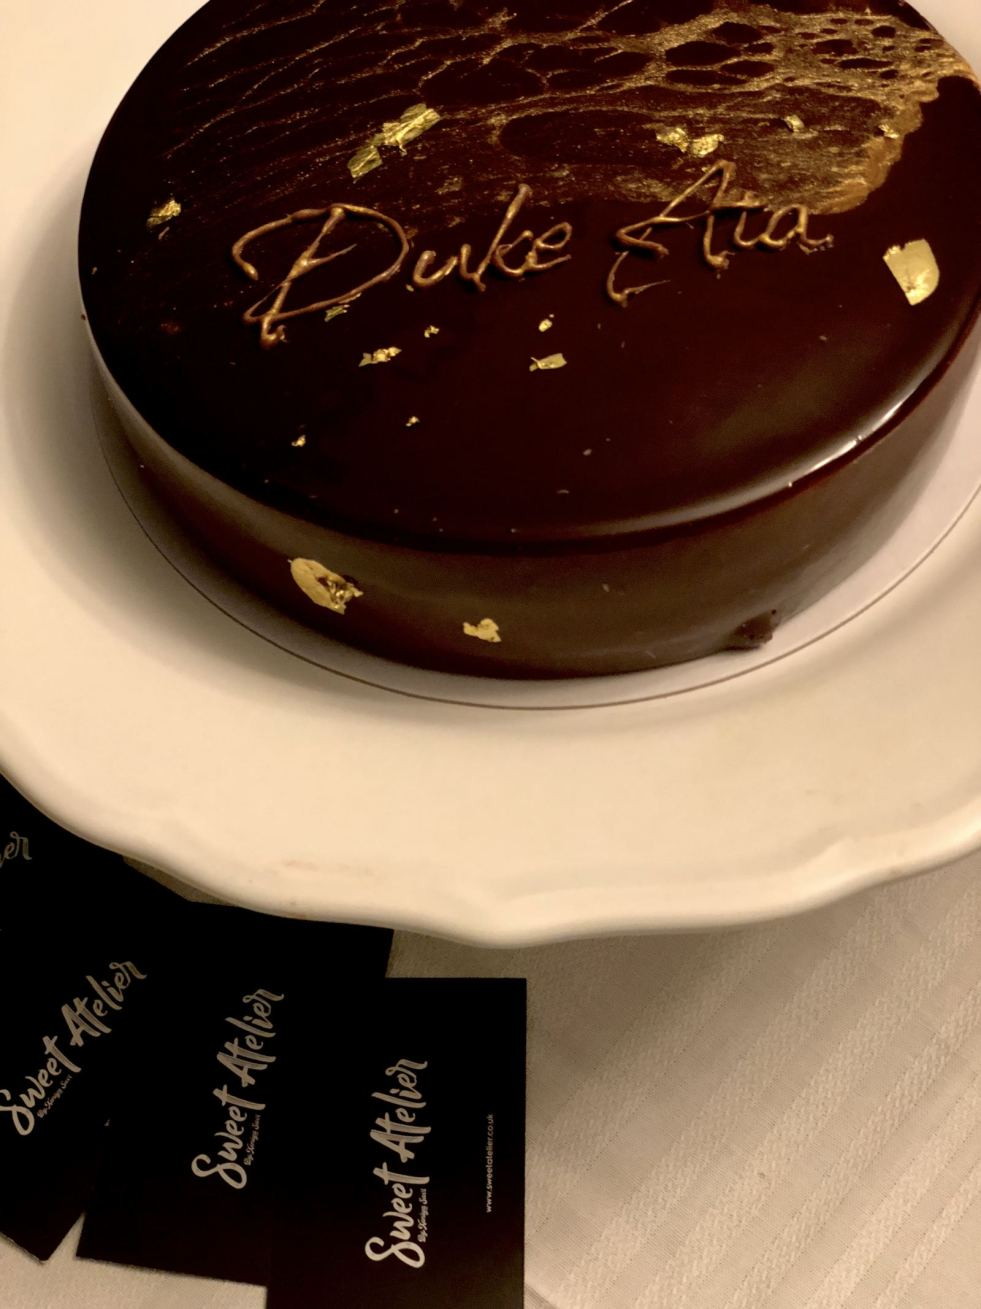 """A personalised cake with the words """"Duke Ata"""" prepared by Sweet Atelier for the Duke Ata Clubhouse launch event"""